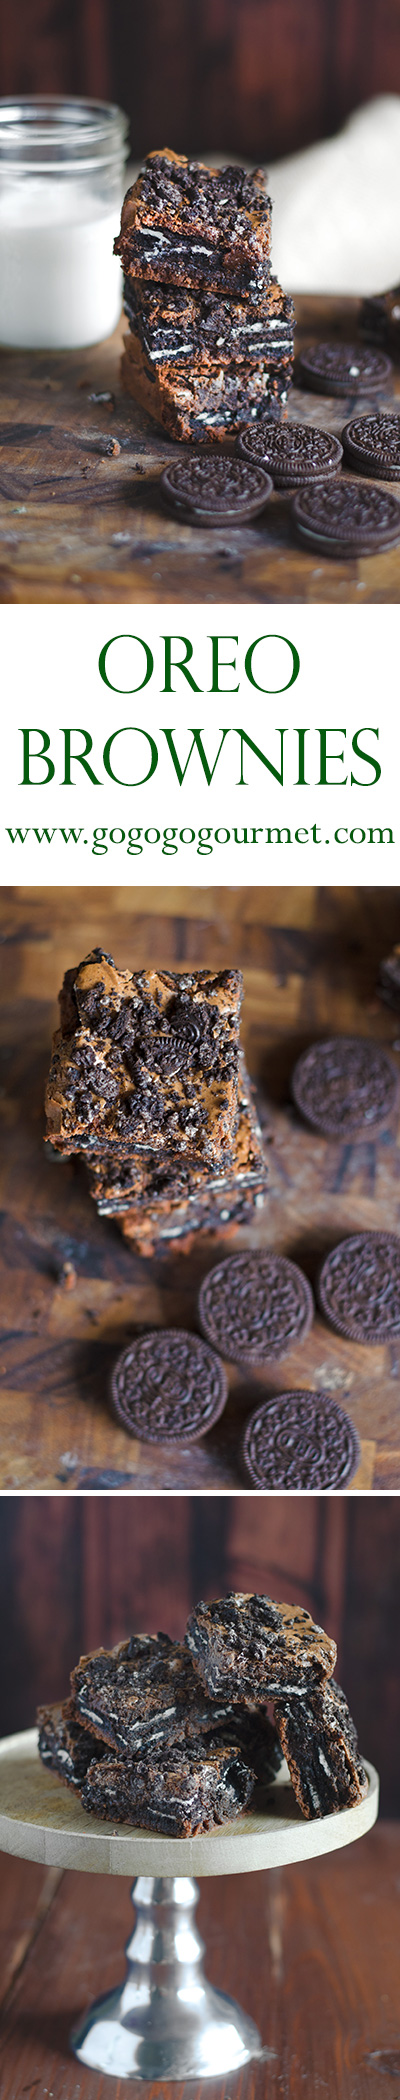 This Oreo Brownies recipe is totally out of this world! Just a few pantry ingredients for a fudge brownie stuffed with Oreos- or use a box mix! |